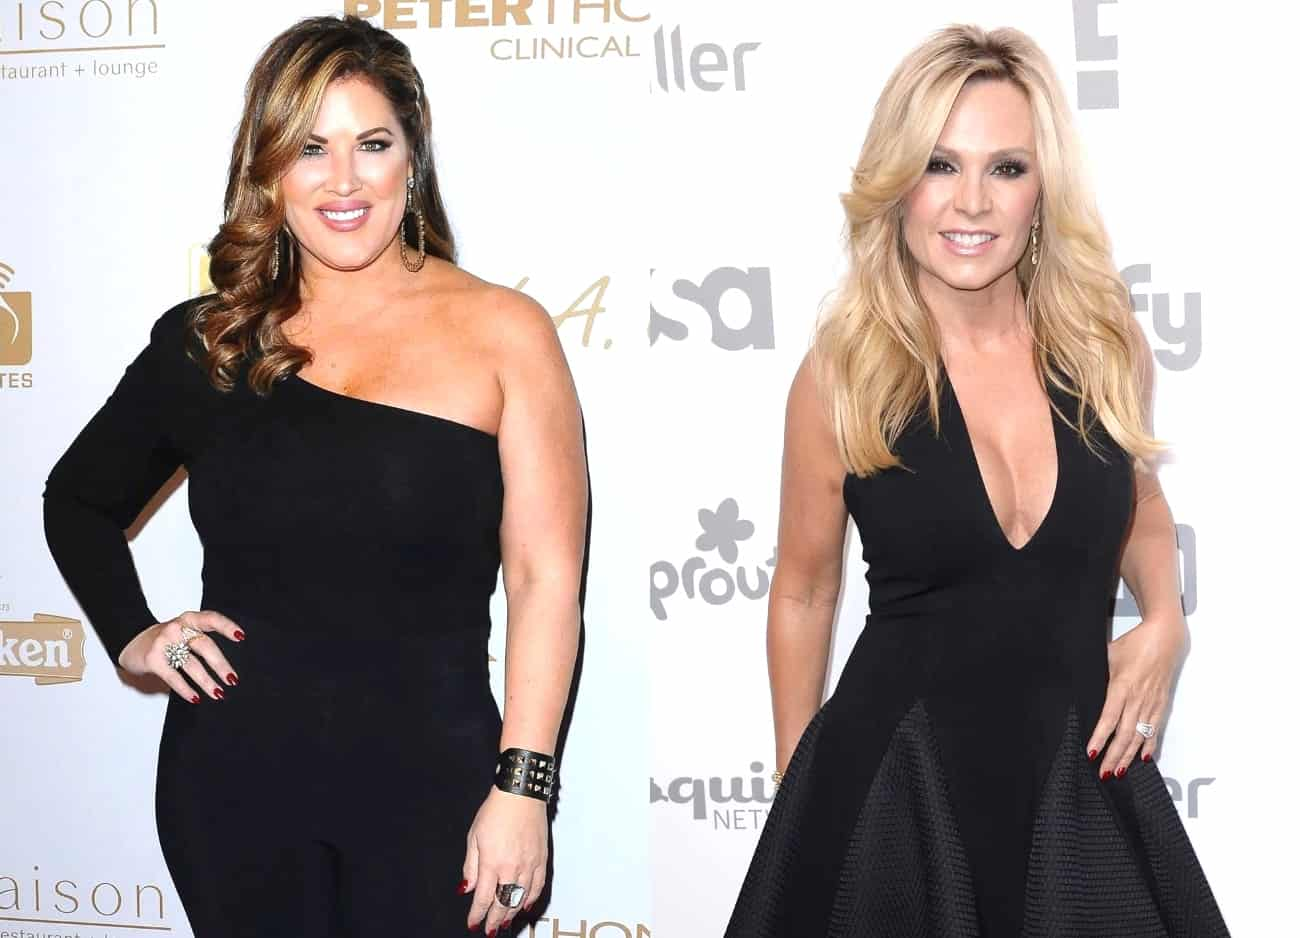 RHOC's Emily Simpson Says Tamra Judge Blocked Her on Twitter, Plus She Reposts Fan's Comment Slamming Tamra and Talks Getting Hip Replacement Surgery